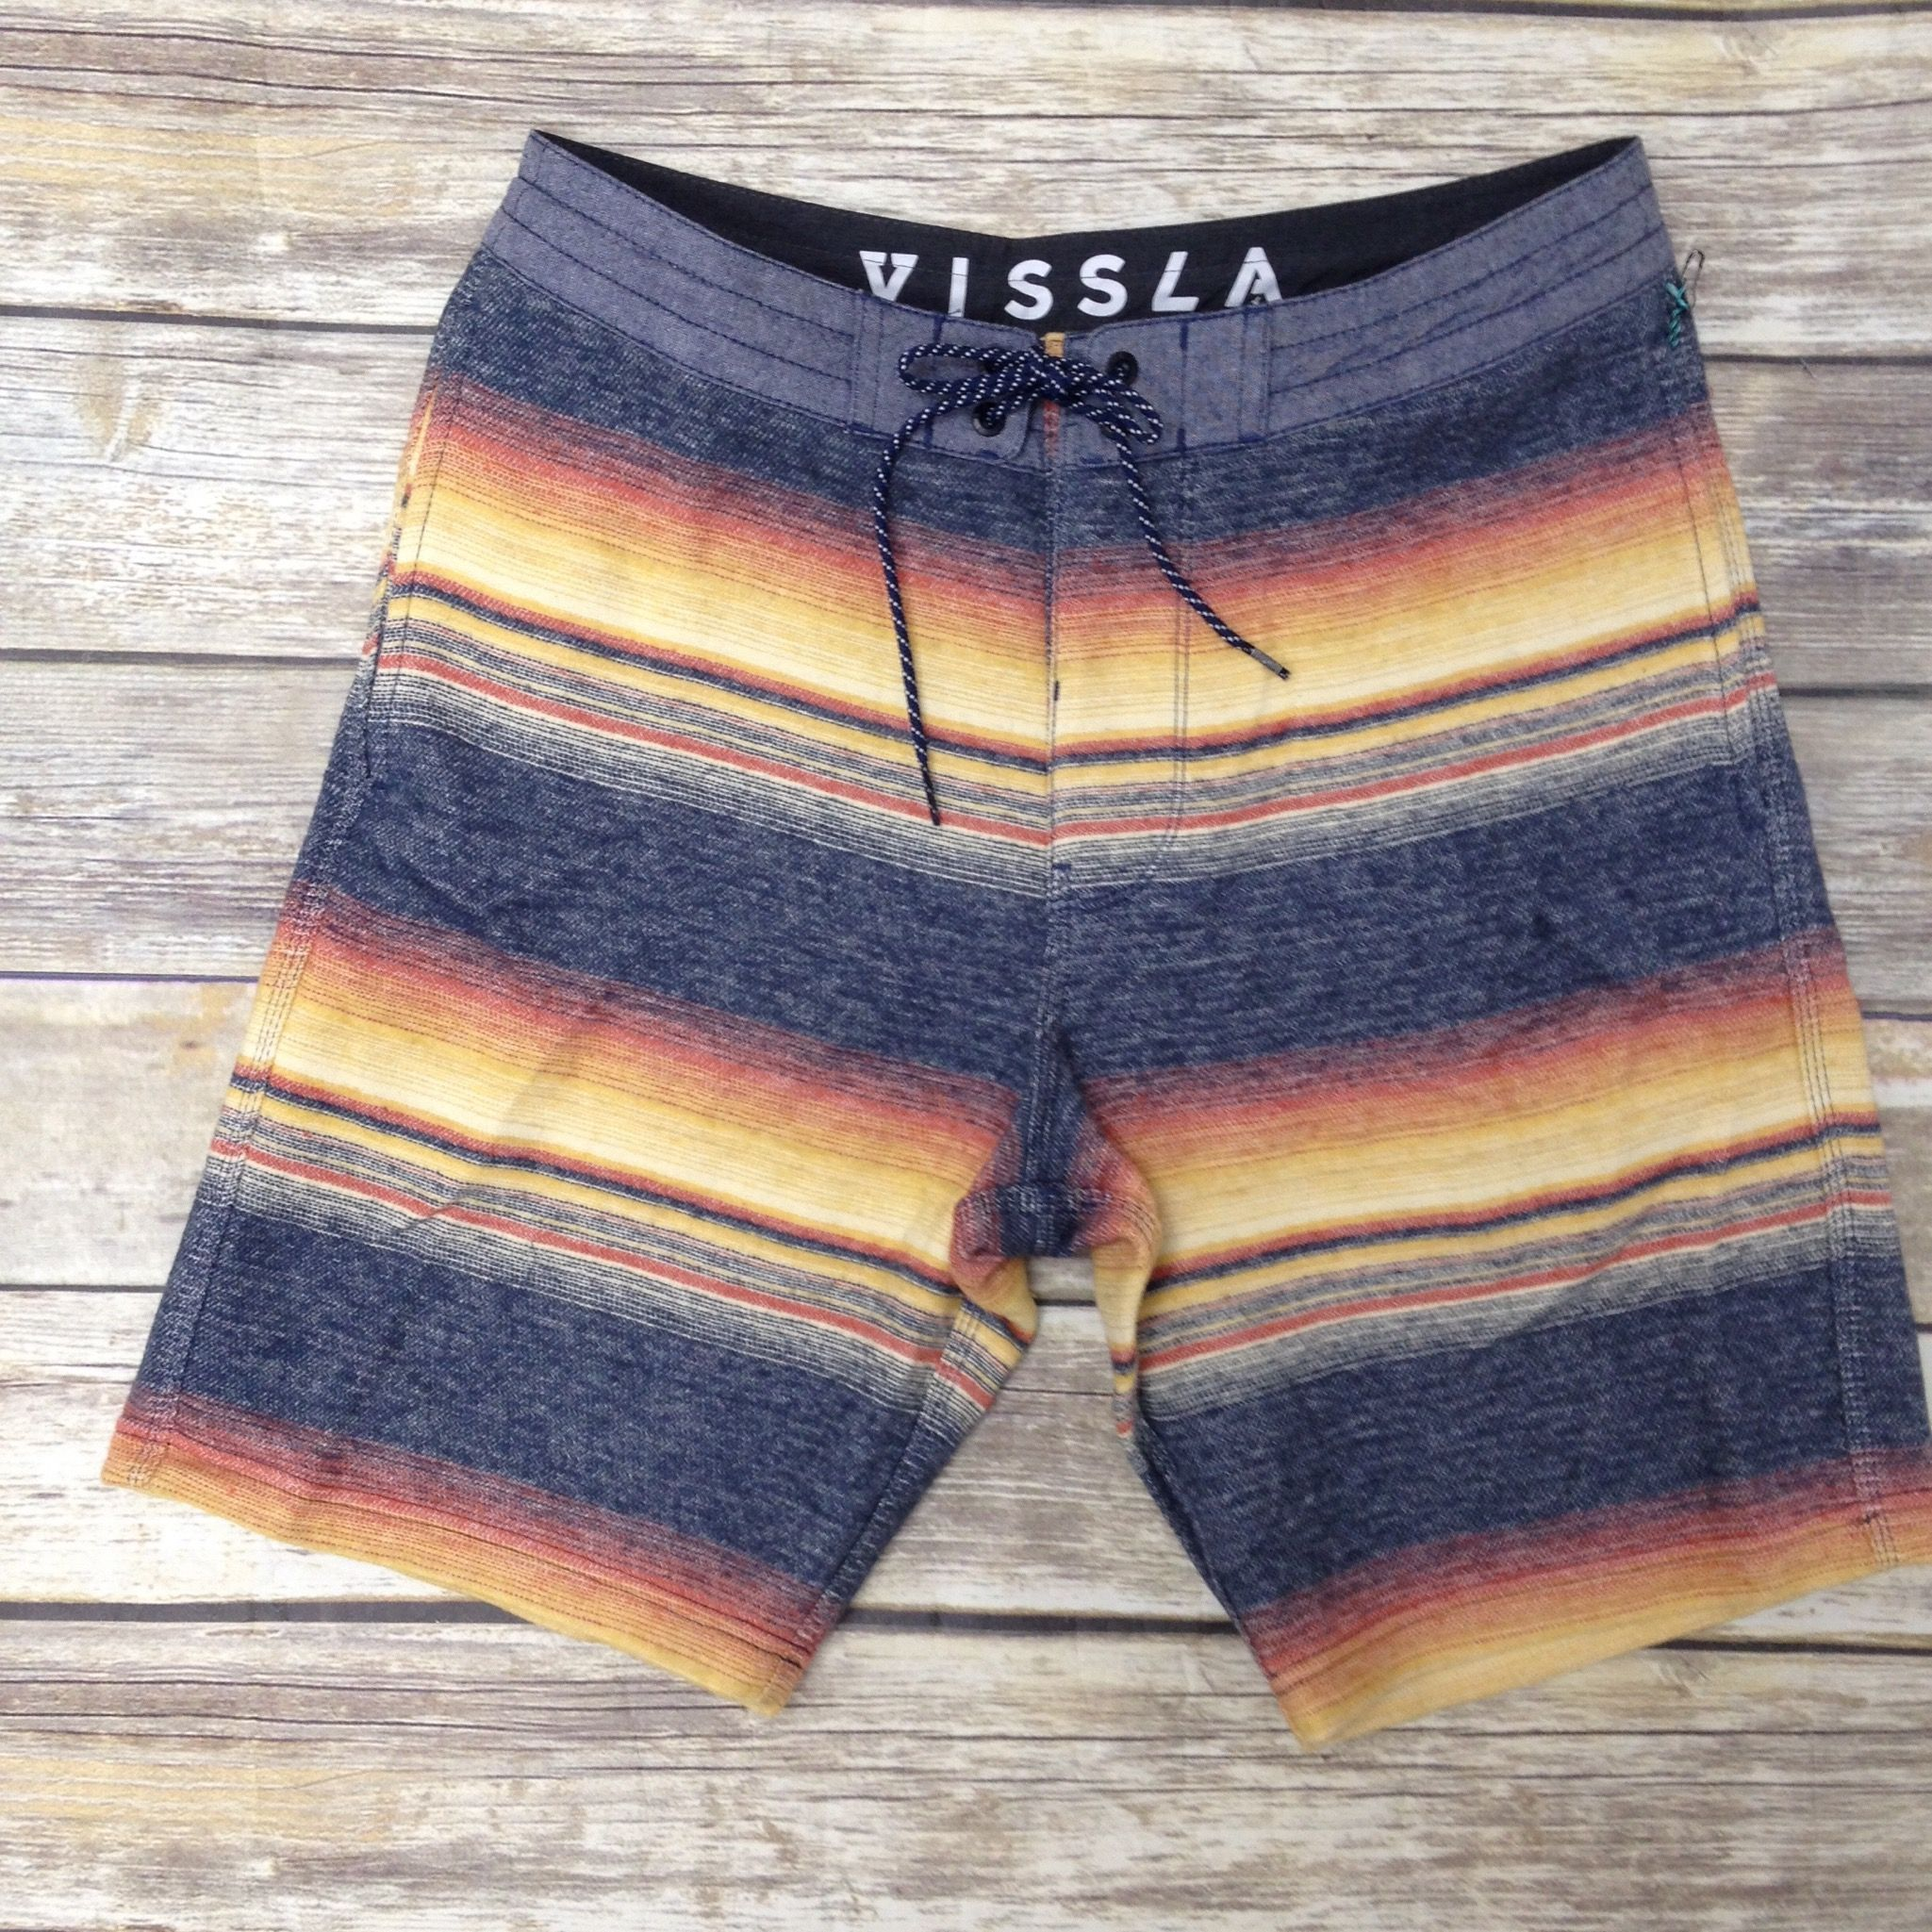 The New Vissla Sofa Surfers Designs Are In Vissla Surfboutique Hawaii Ronherman Hawaii Fashion Ho Boutique Style Outfits Clothes Mens Outfits